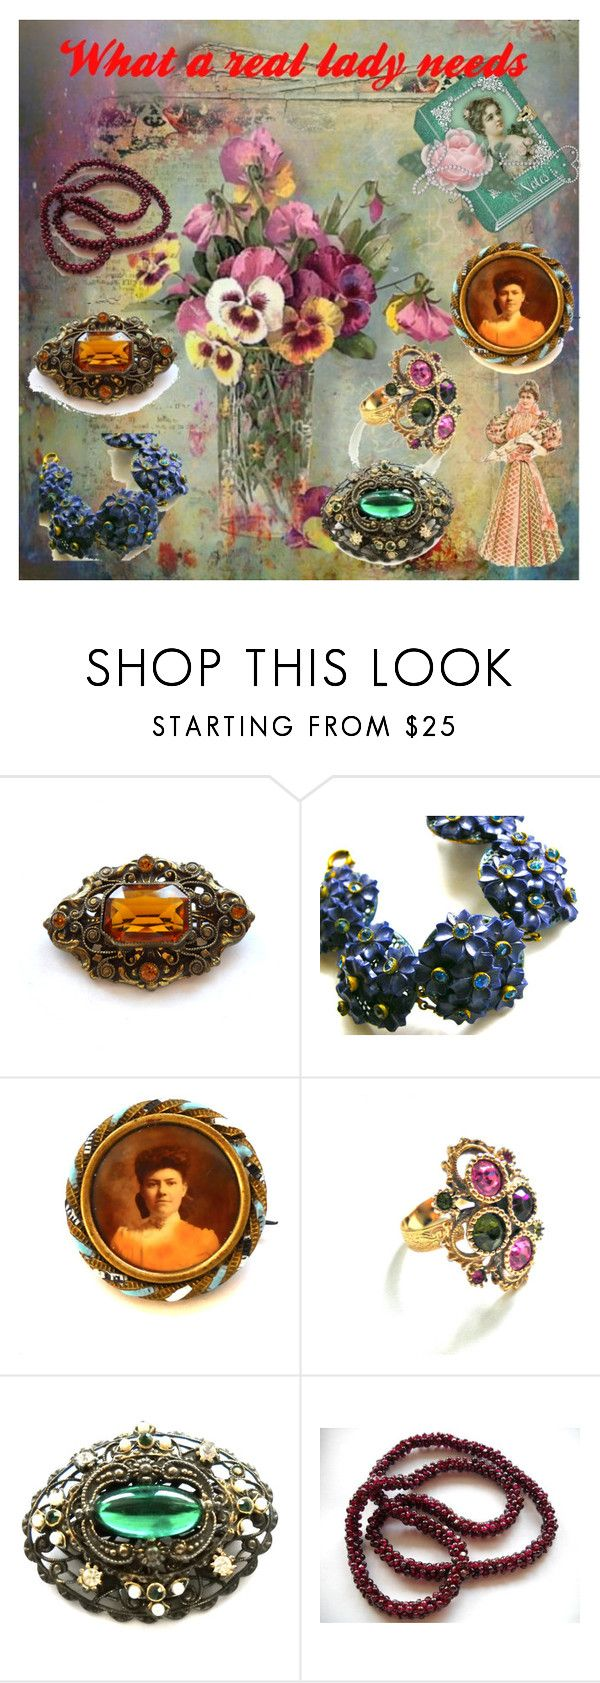 What a real lady needs! by luckystanlv on Polyvore